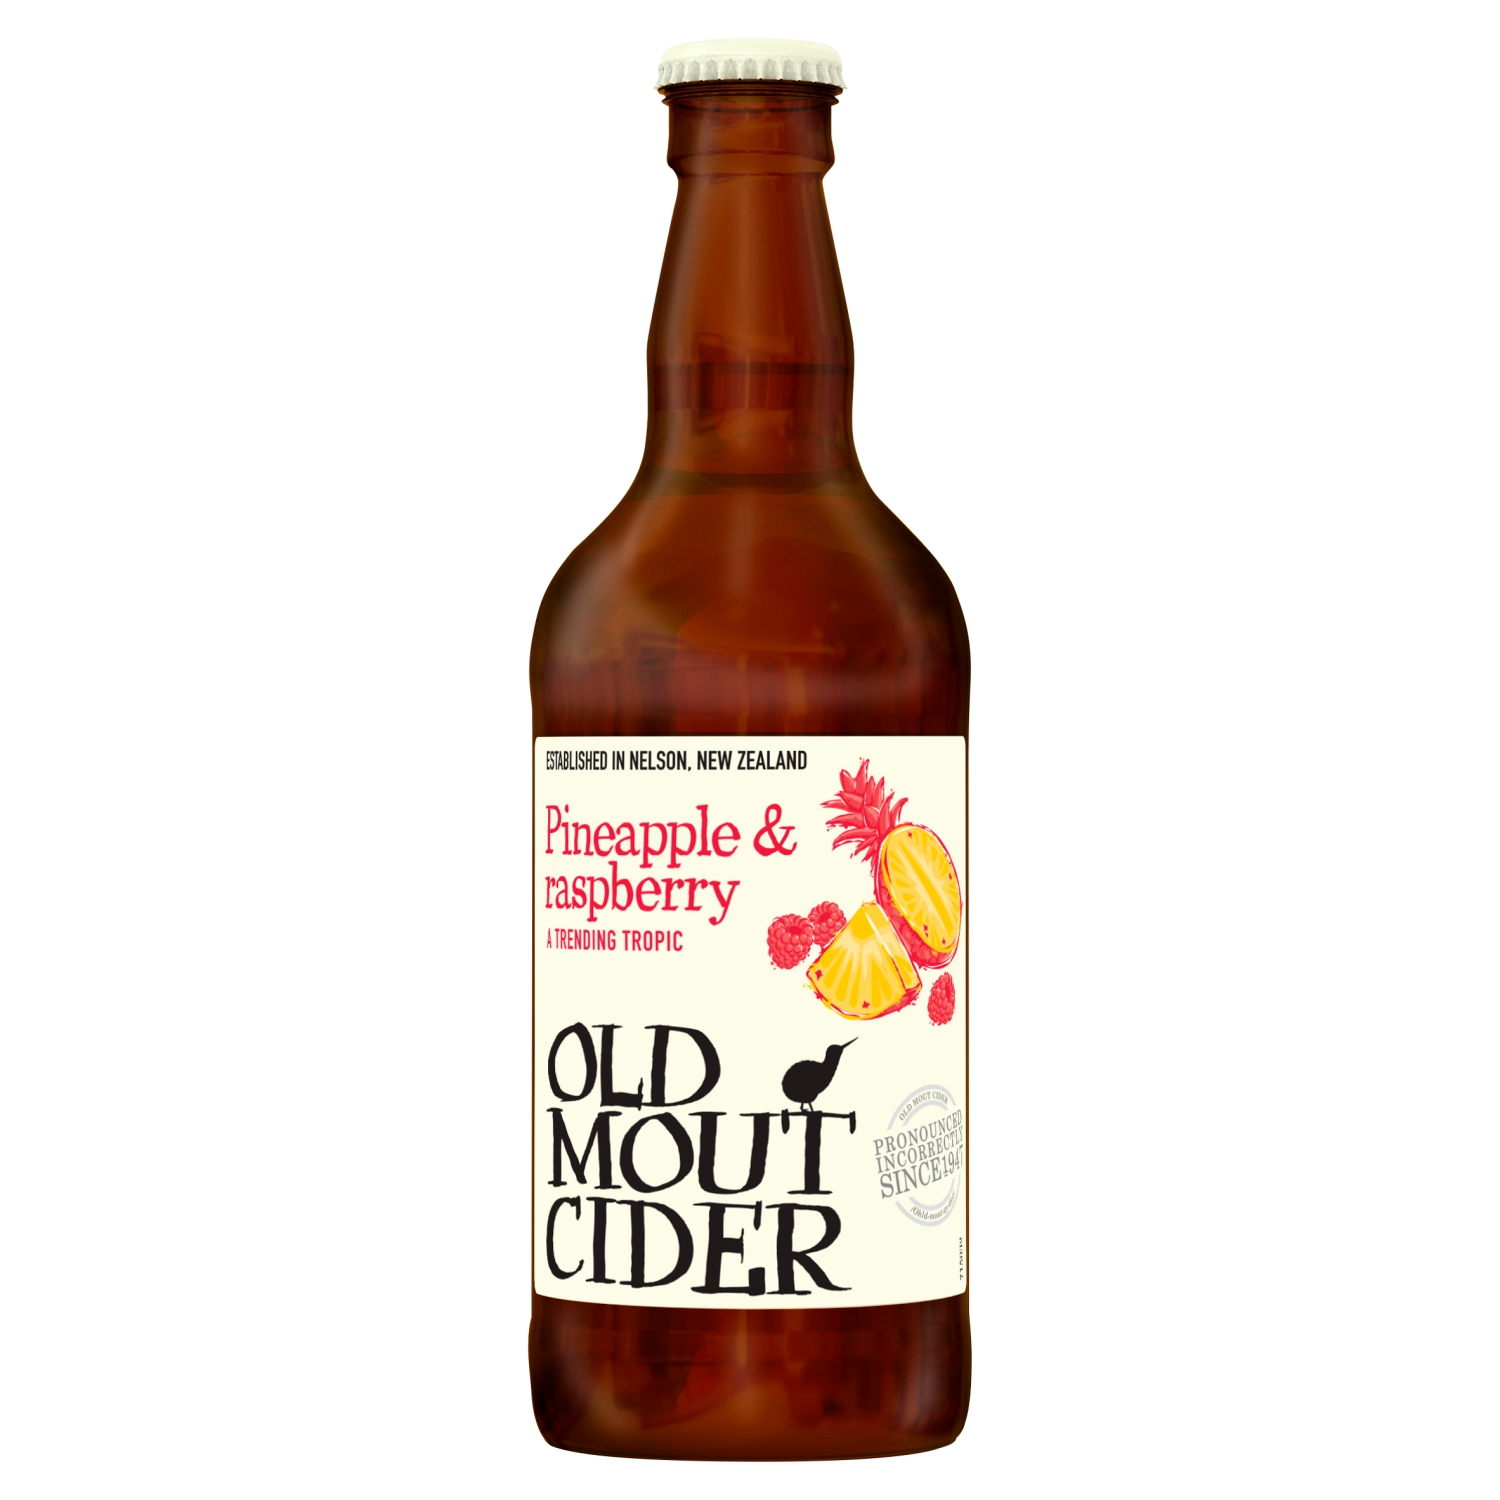 Old Mout Cider Pineapple & Raspberry 500ml Bottle